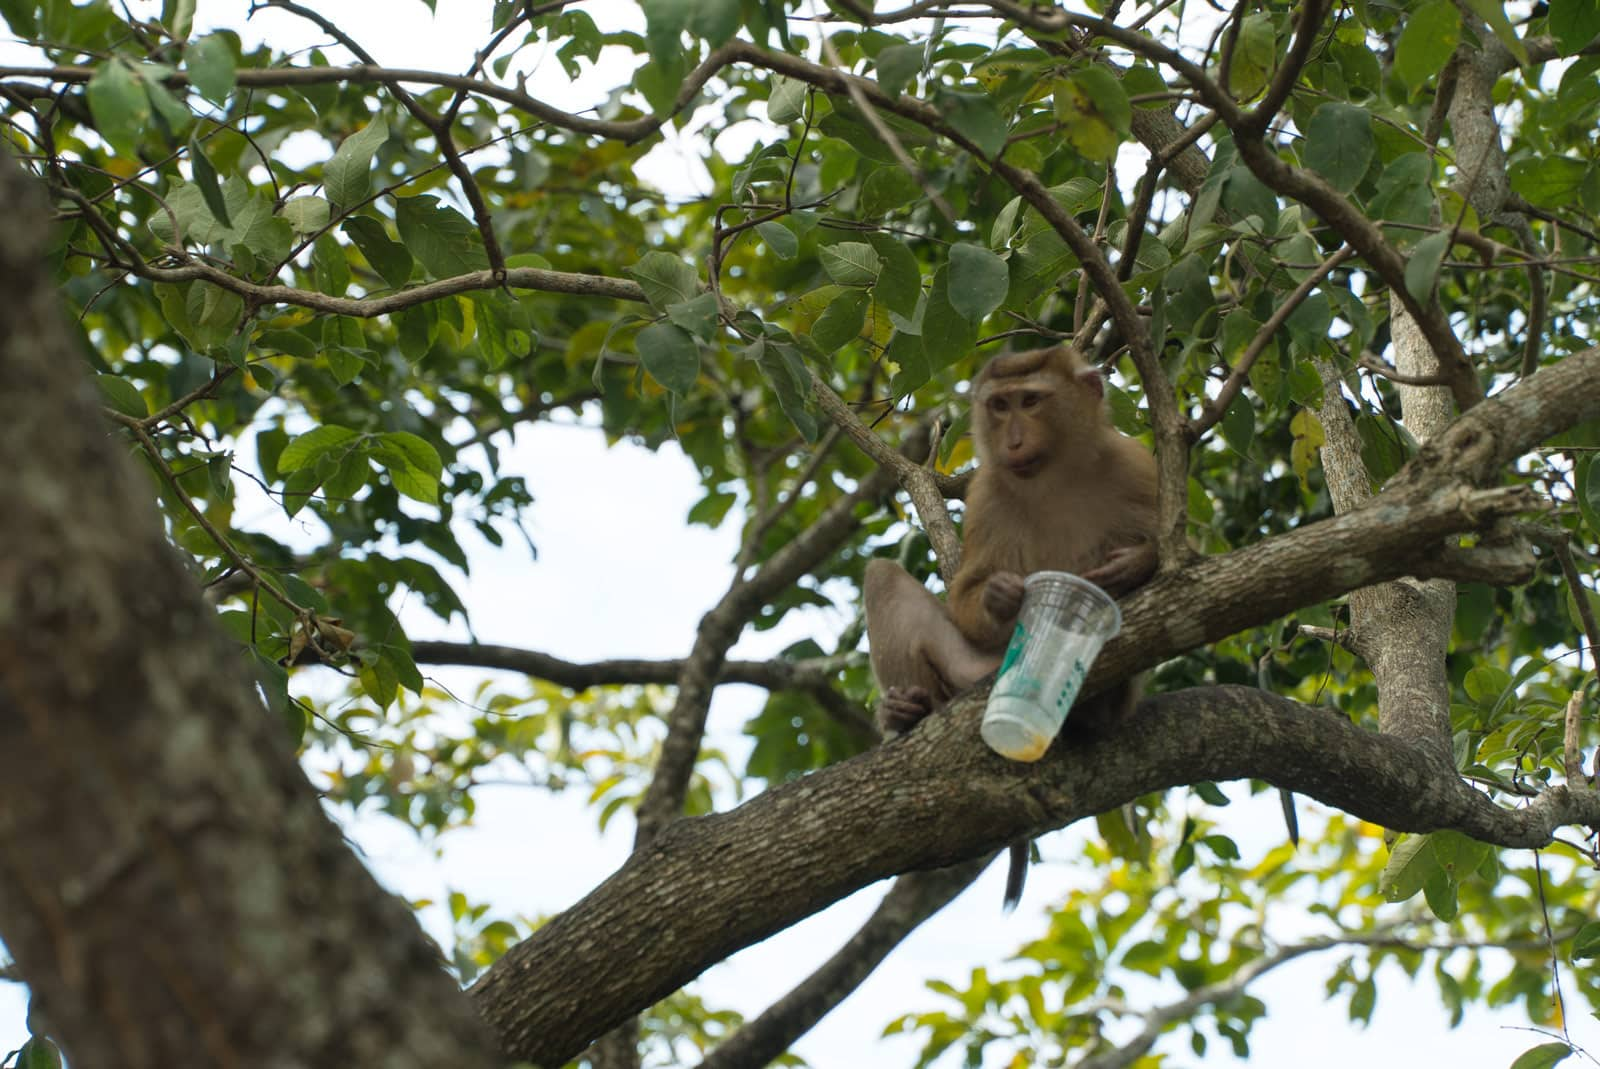 A monkey with a drink